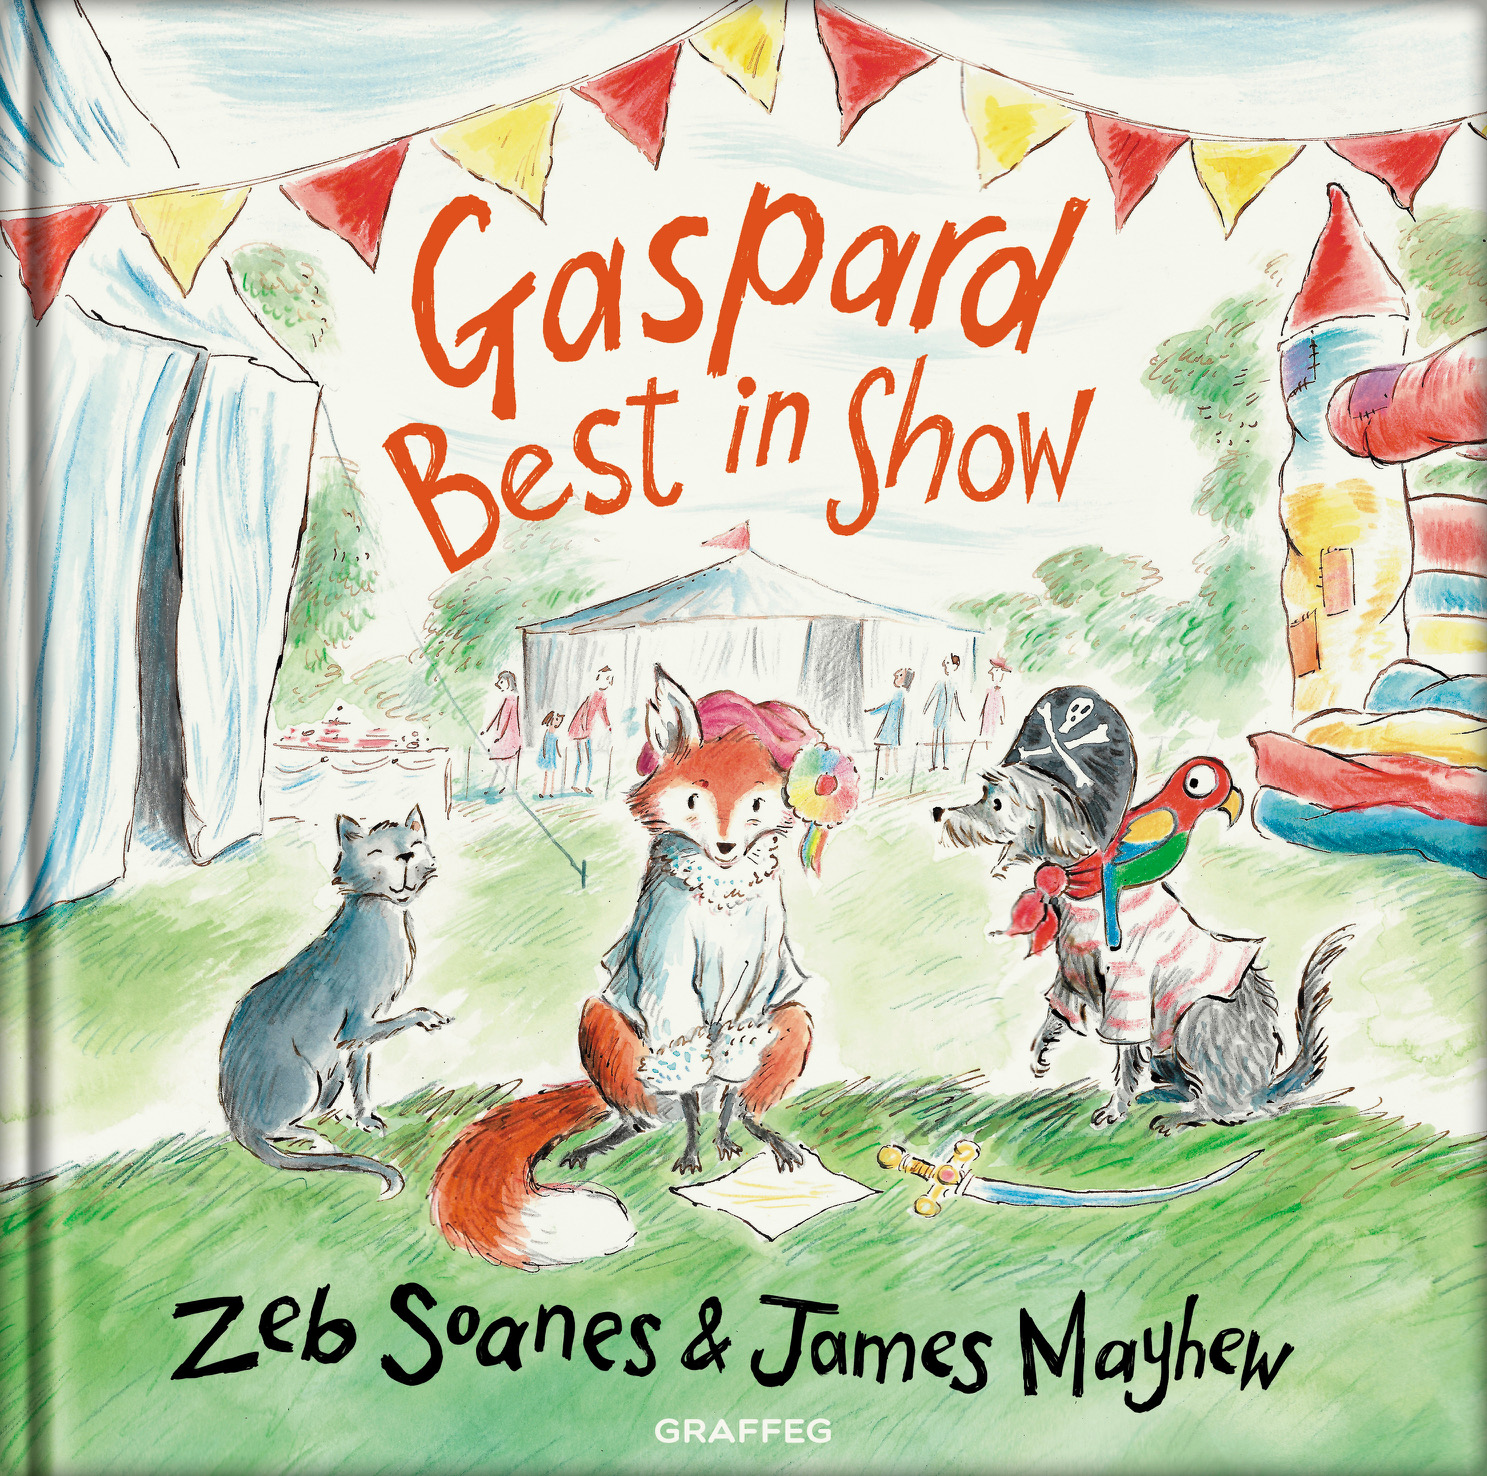 HARDBACK BOOK - Published August 22 - Gaspard and Peter set out on a new adventure and find Finty at the local summer fete. When Gaspard unwittingly gets entered into the fancy-dress dog show, chaos and hilarity ensue in this fun-packed sequel to Gaspard the Fox.